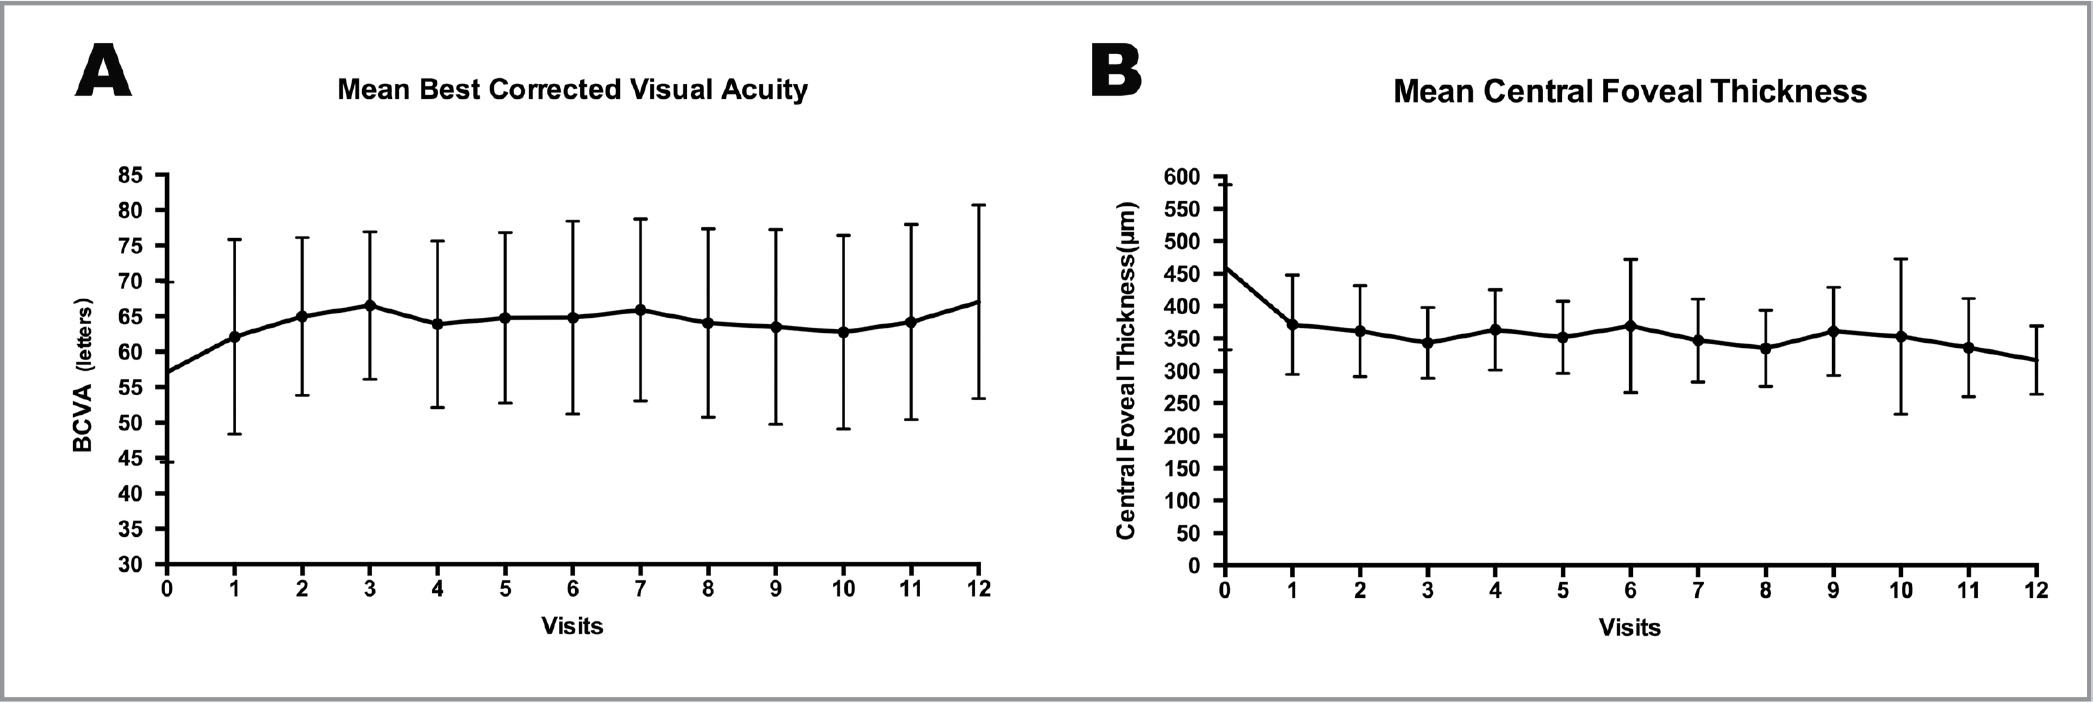 Best-corrected visual acuity (BCVA) and central foveal thickness change from baseline to 12 months. Vertical bars are ±1 standard error of the mean. (A) An average 10.0 BCVA letters gained was observed from the baseline to the 12-month visit (P < .05). (B) An average of 143.4 μm decrease of central foveal thickness was observed from the baseline to the 12-month visit (P < .05).